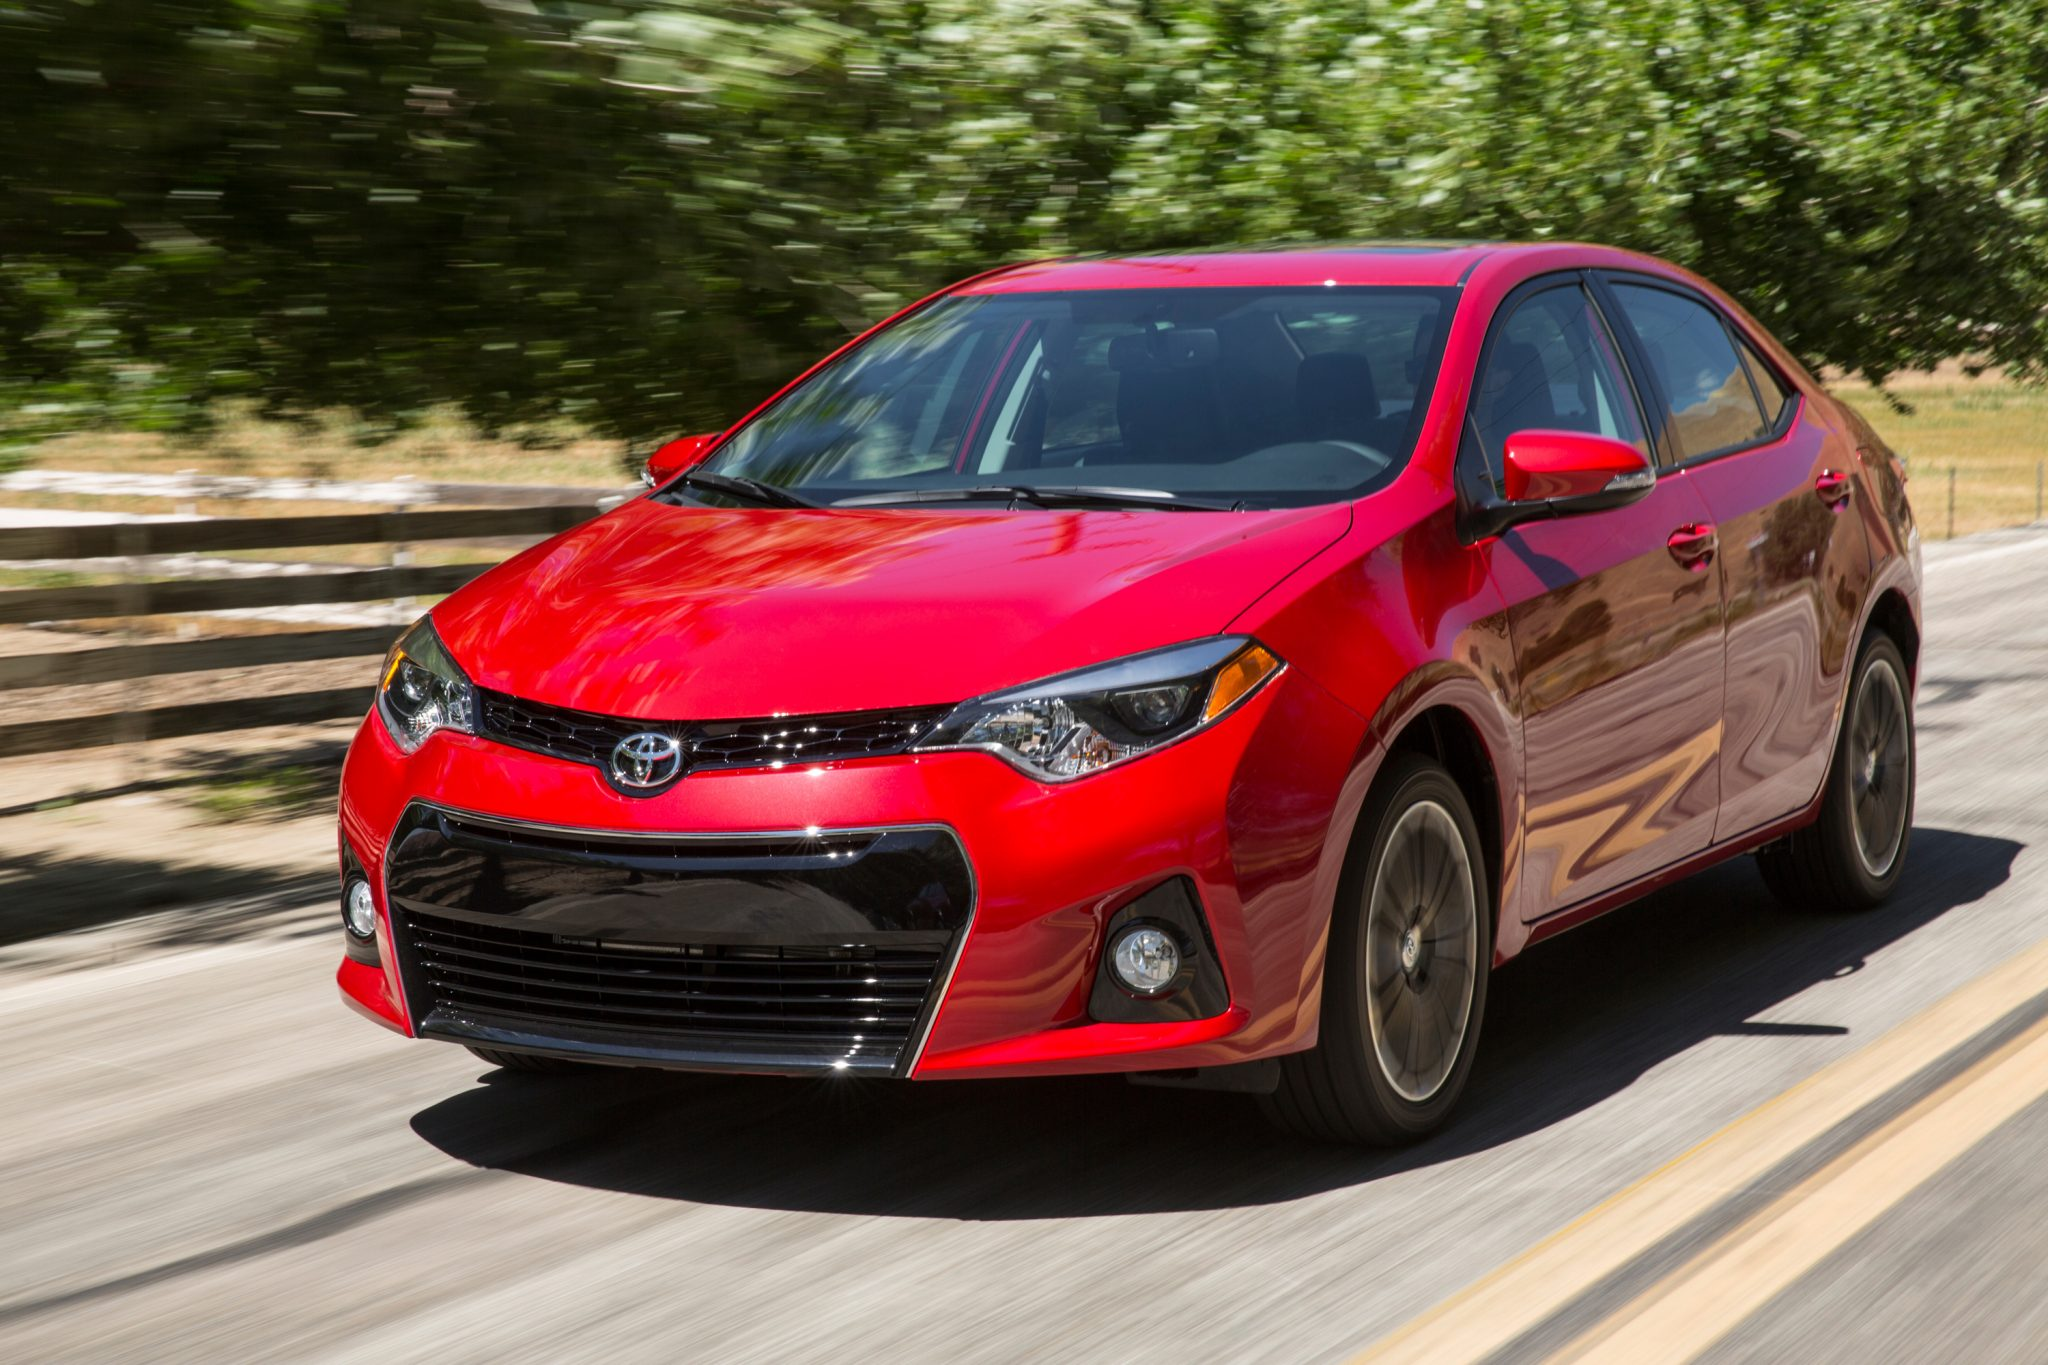 Nhtsa Awards 2015 Toyota Corolla Five Star Safety Rating